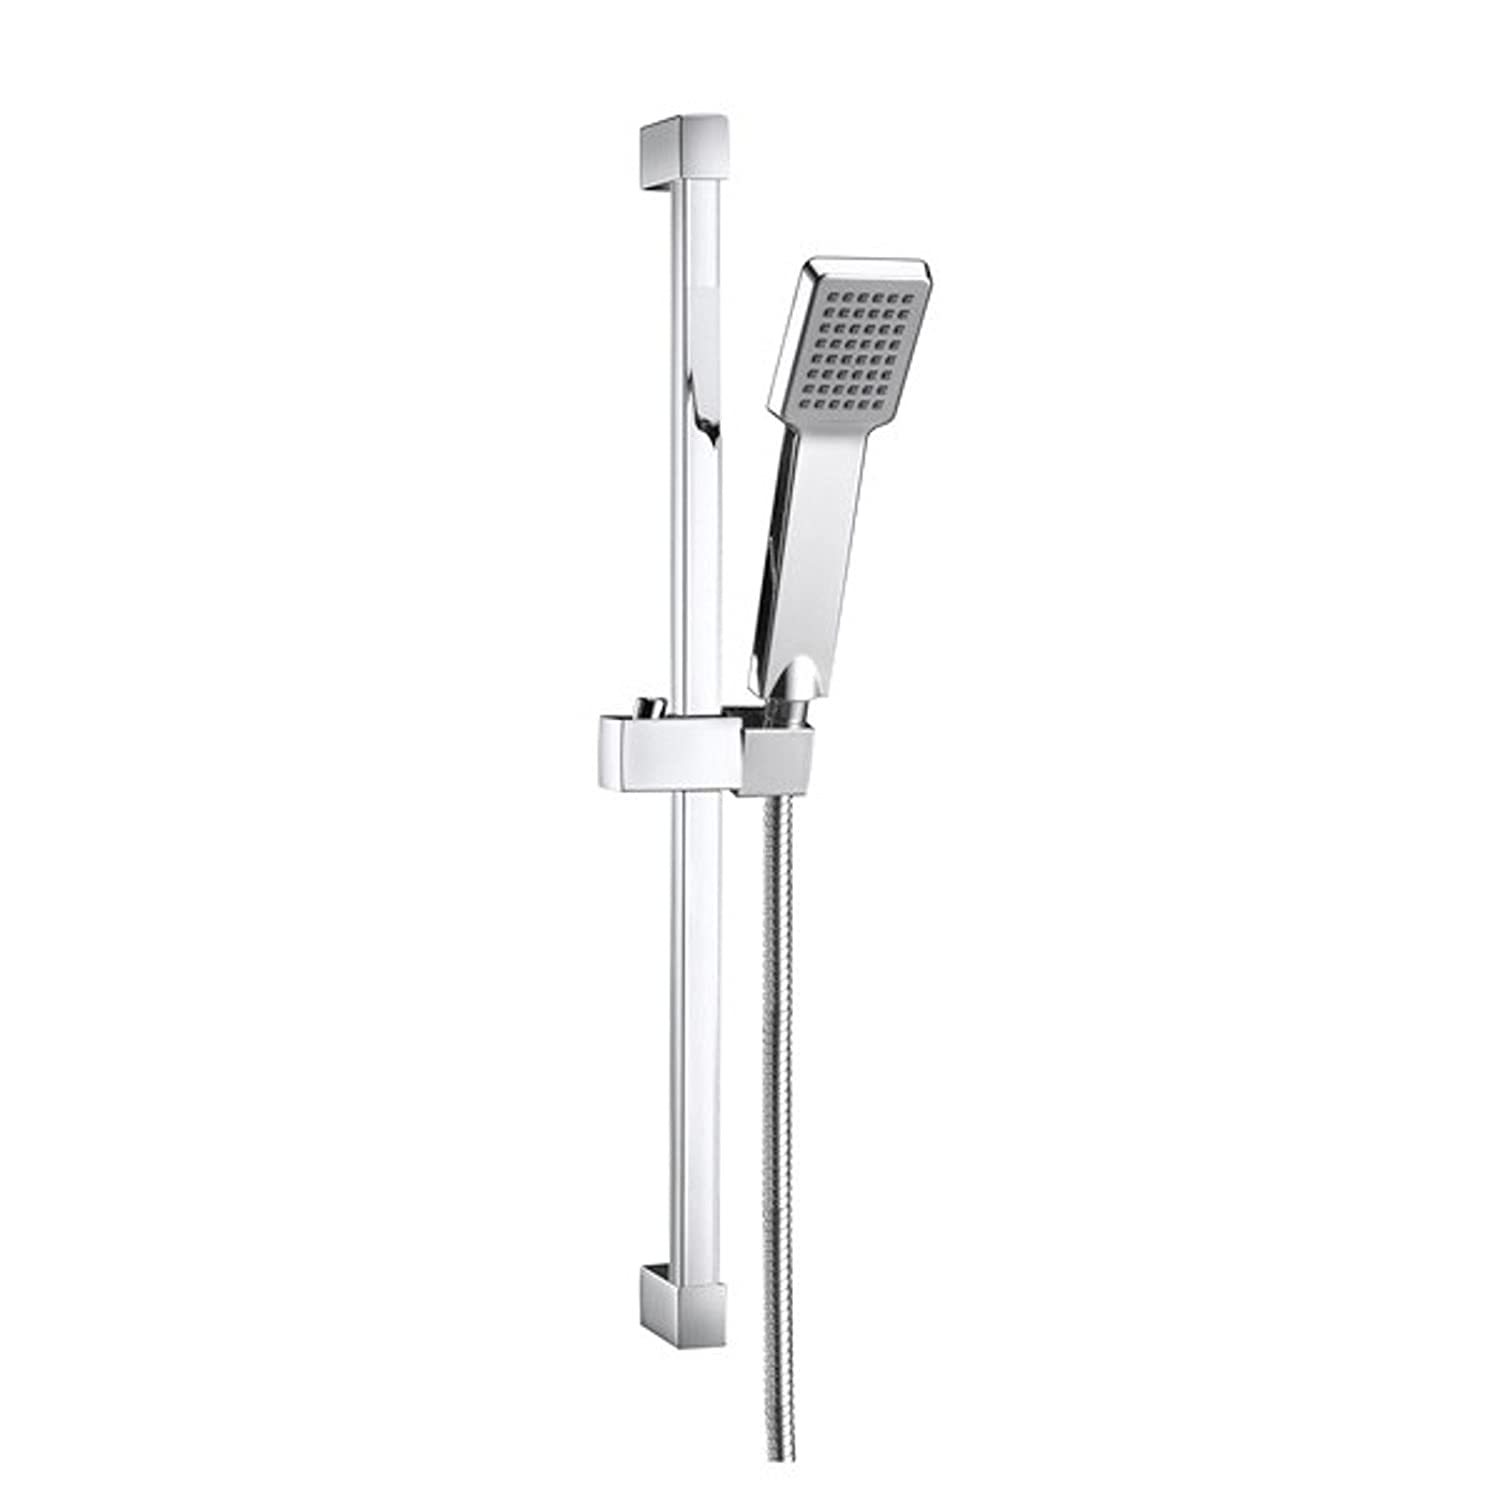 ENKI Square Design Shower Slider Riser Rail Kit with Shower Head and Hose